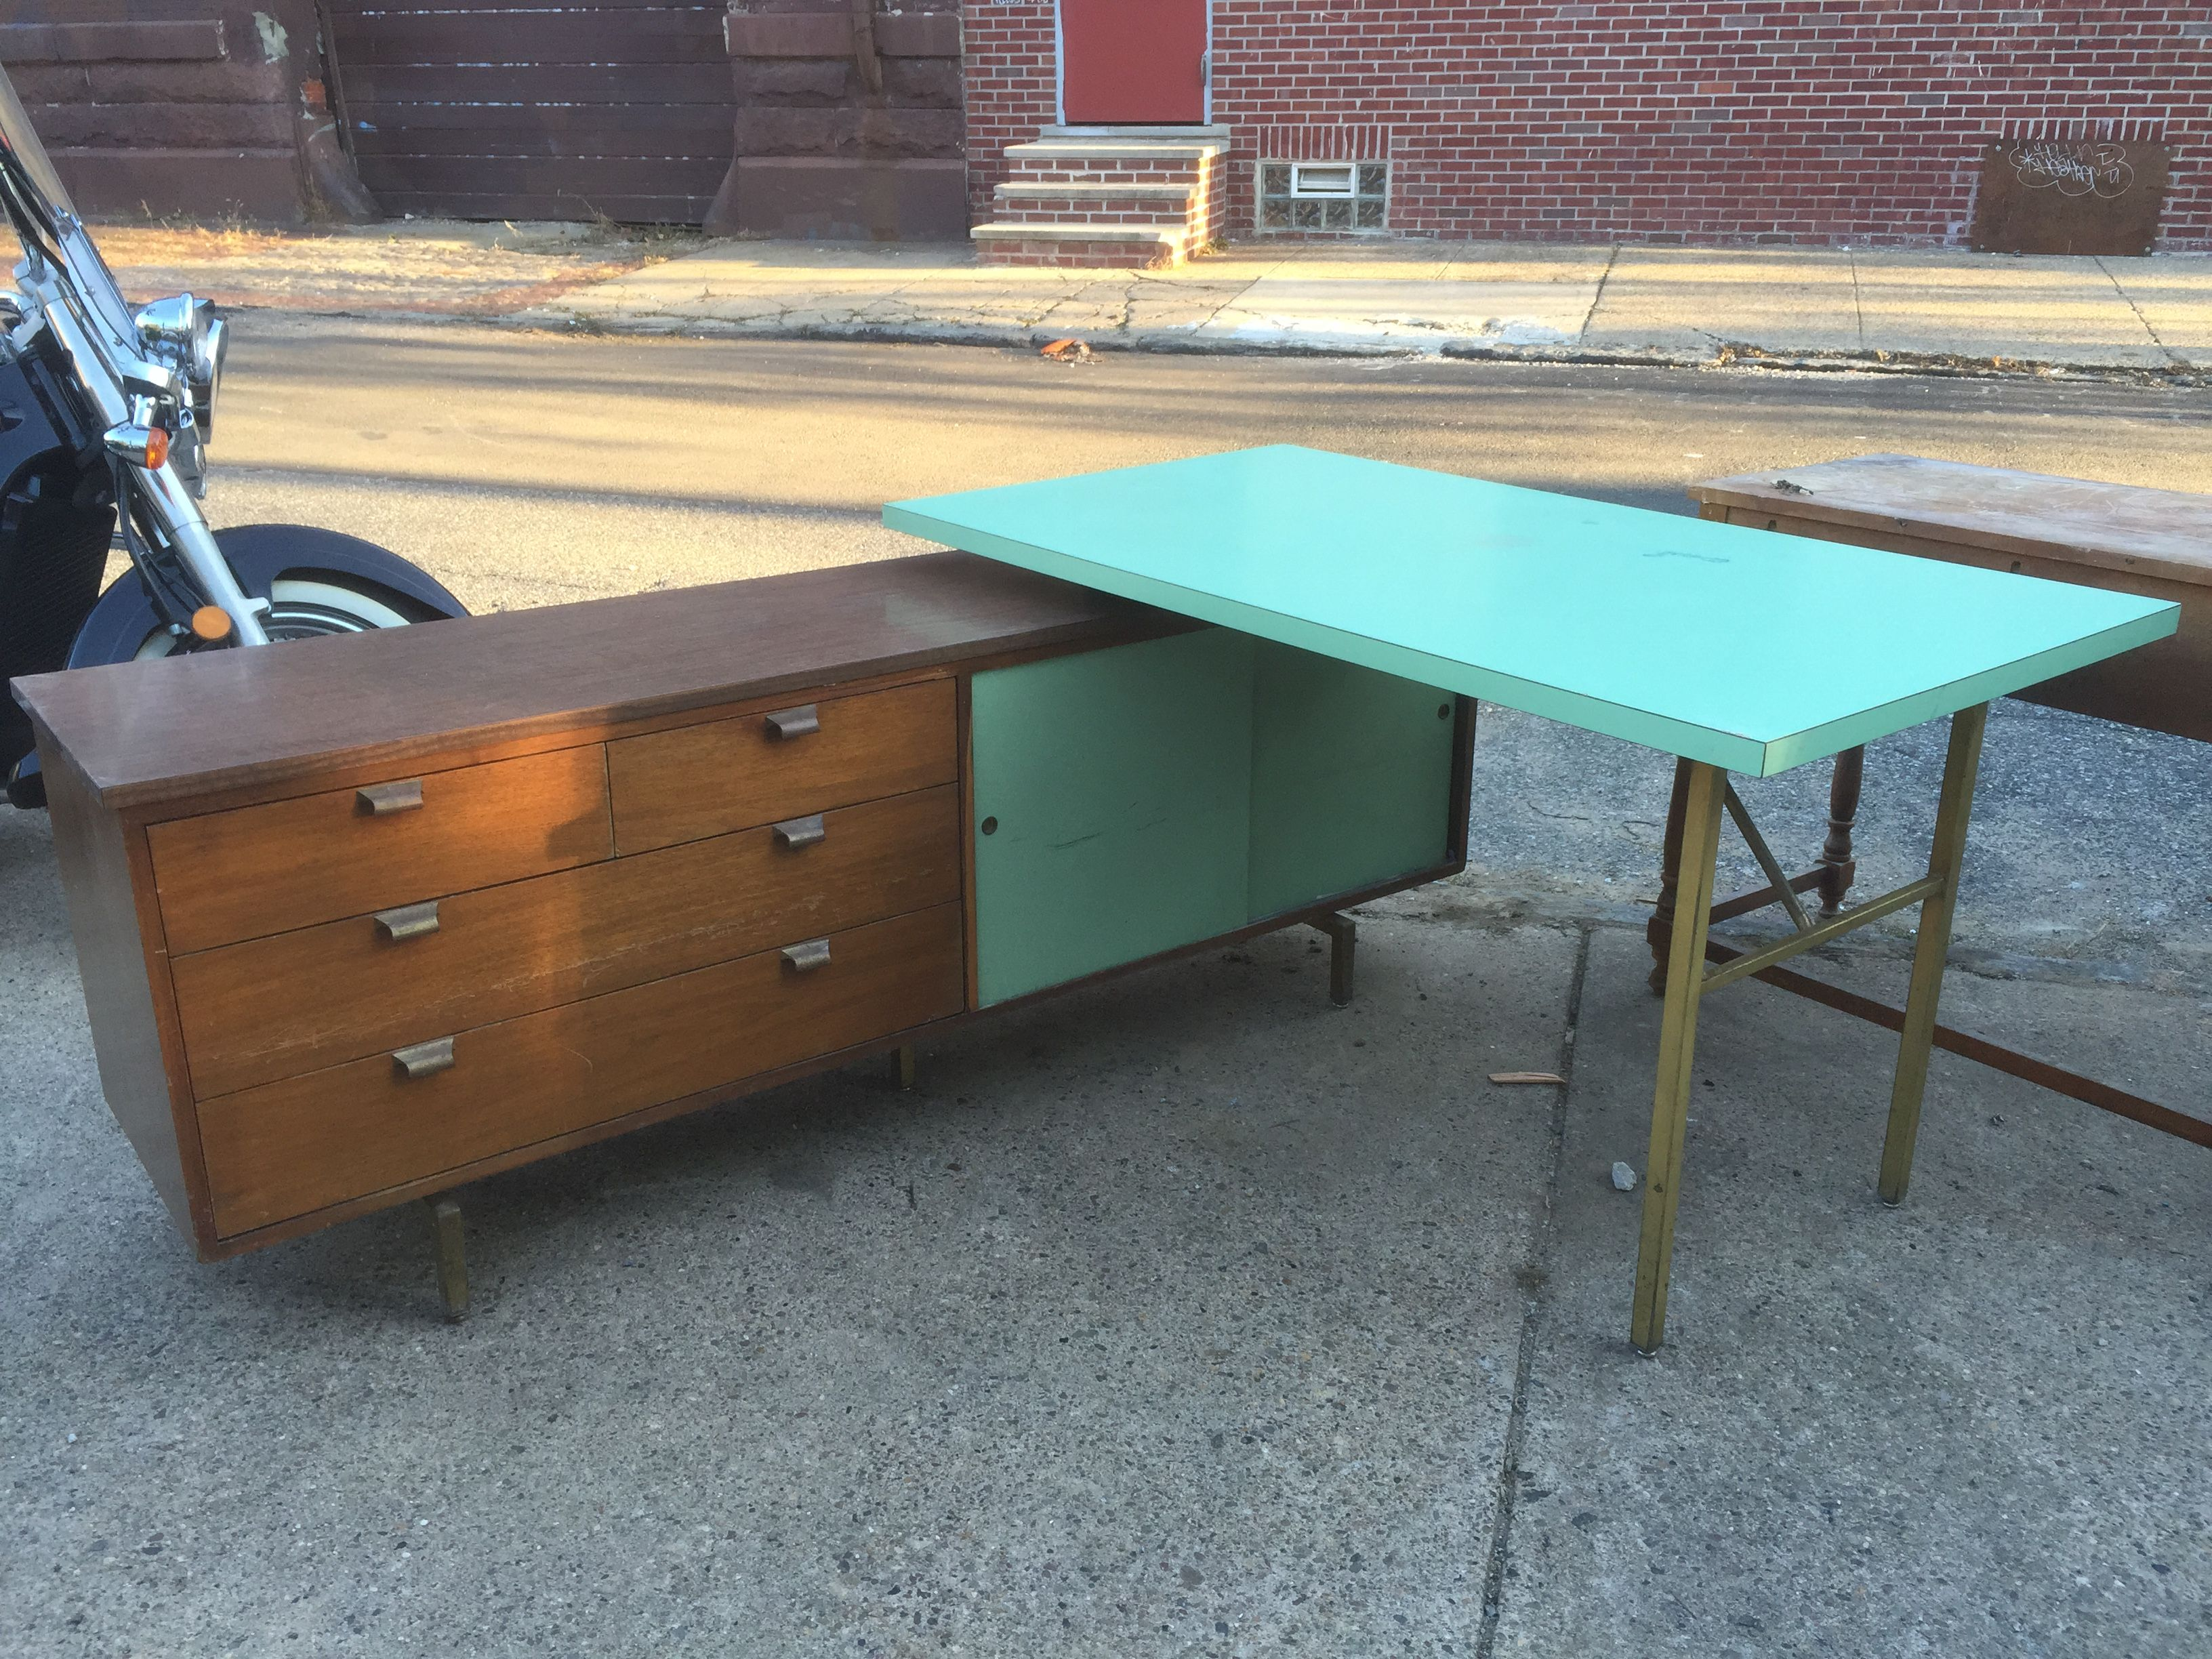 Delightful Salvaged This L Shaped Desk/cabinet Combo From Going To The Dump. Love